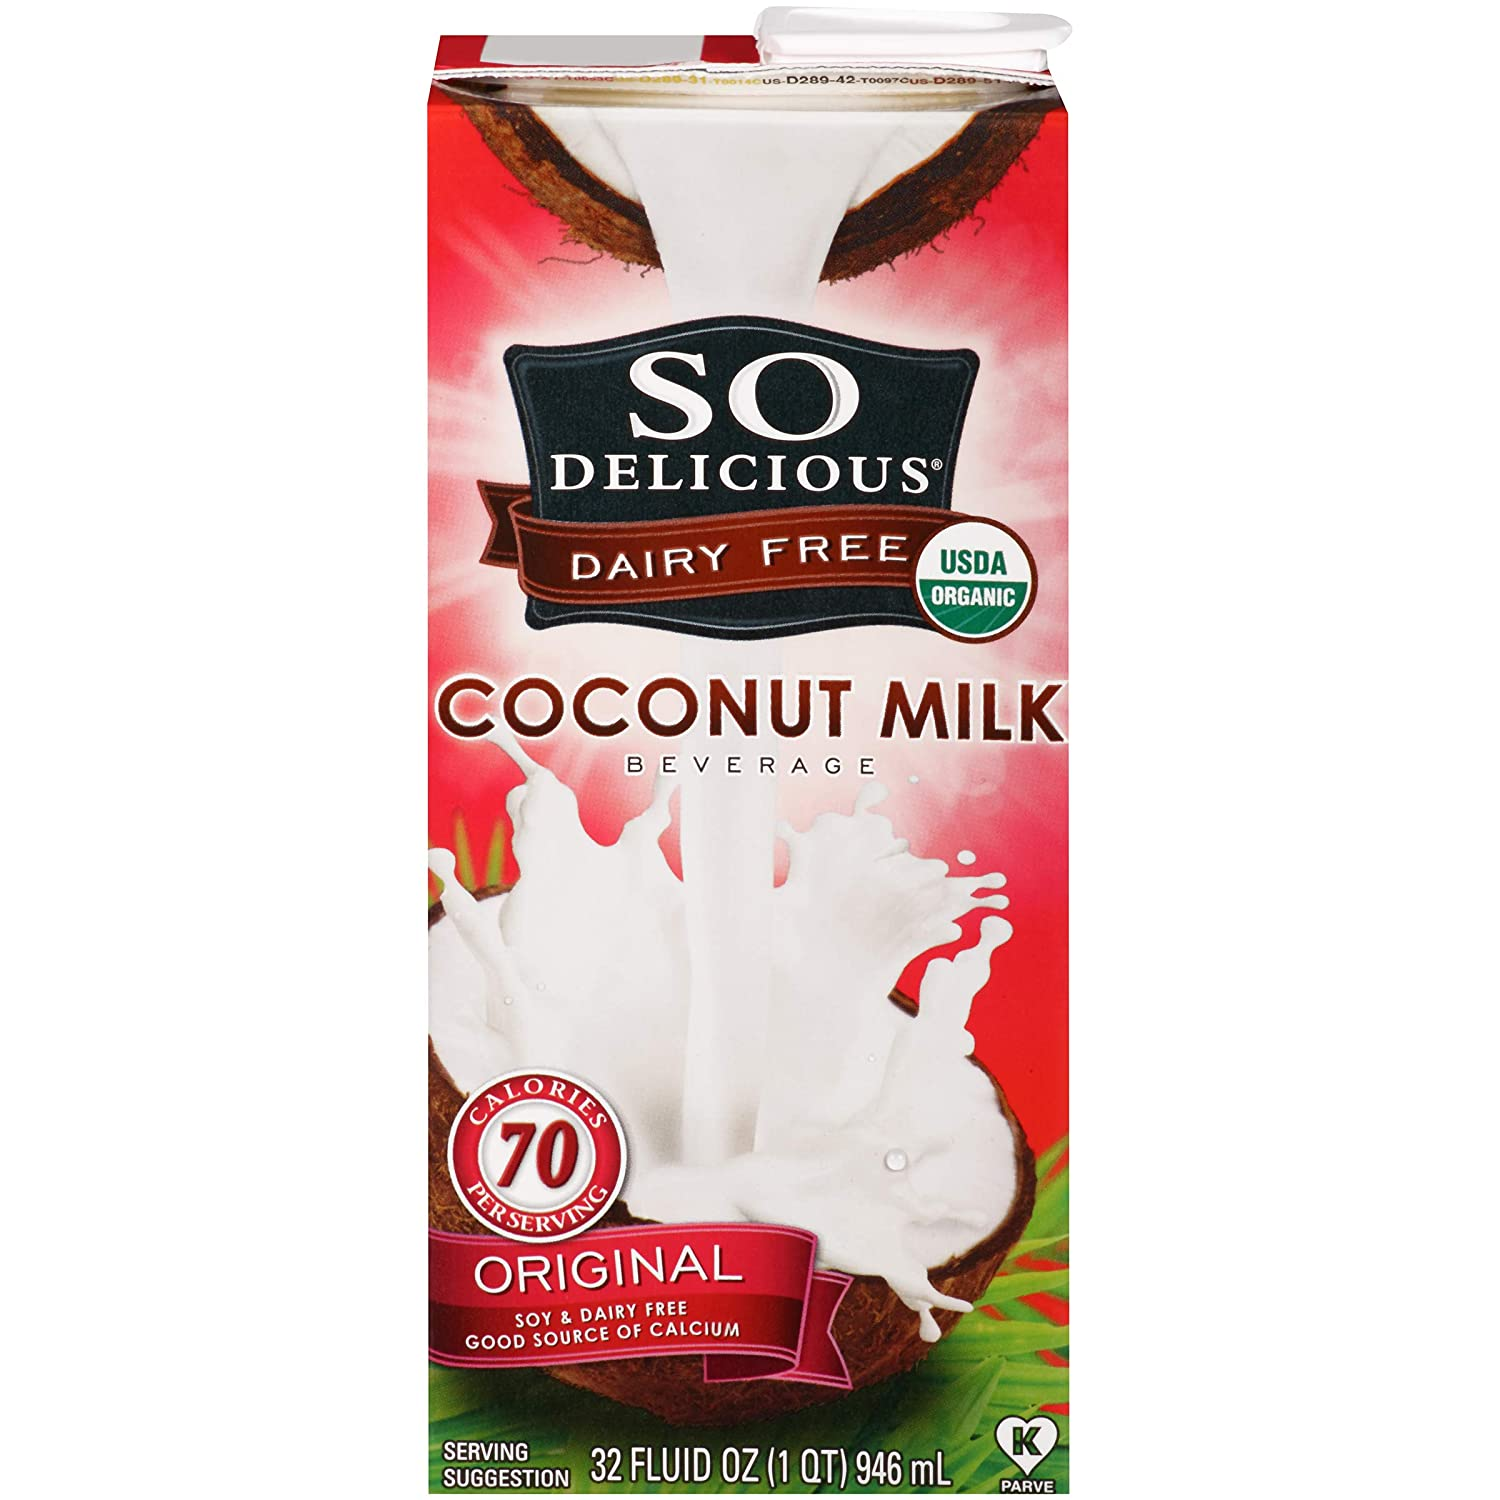 So Delicious Dairy-Free Organic Coconutmilk Beverage, Original, 32 Ounce (Pack of 6) Plant-Based Vegan Dairy Alternative, Great in Smoothies Protein Shakes or Cereal